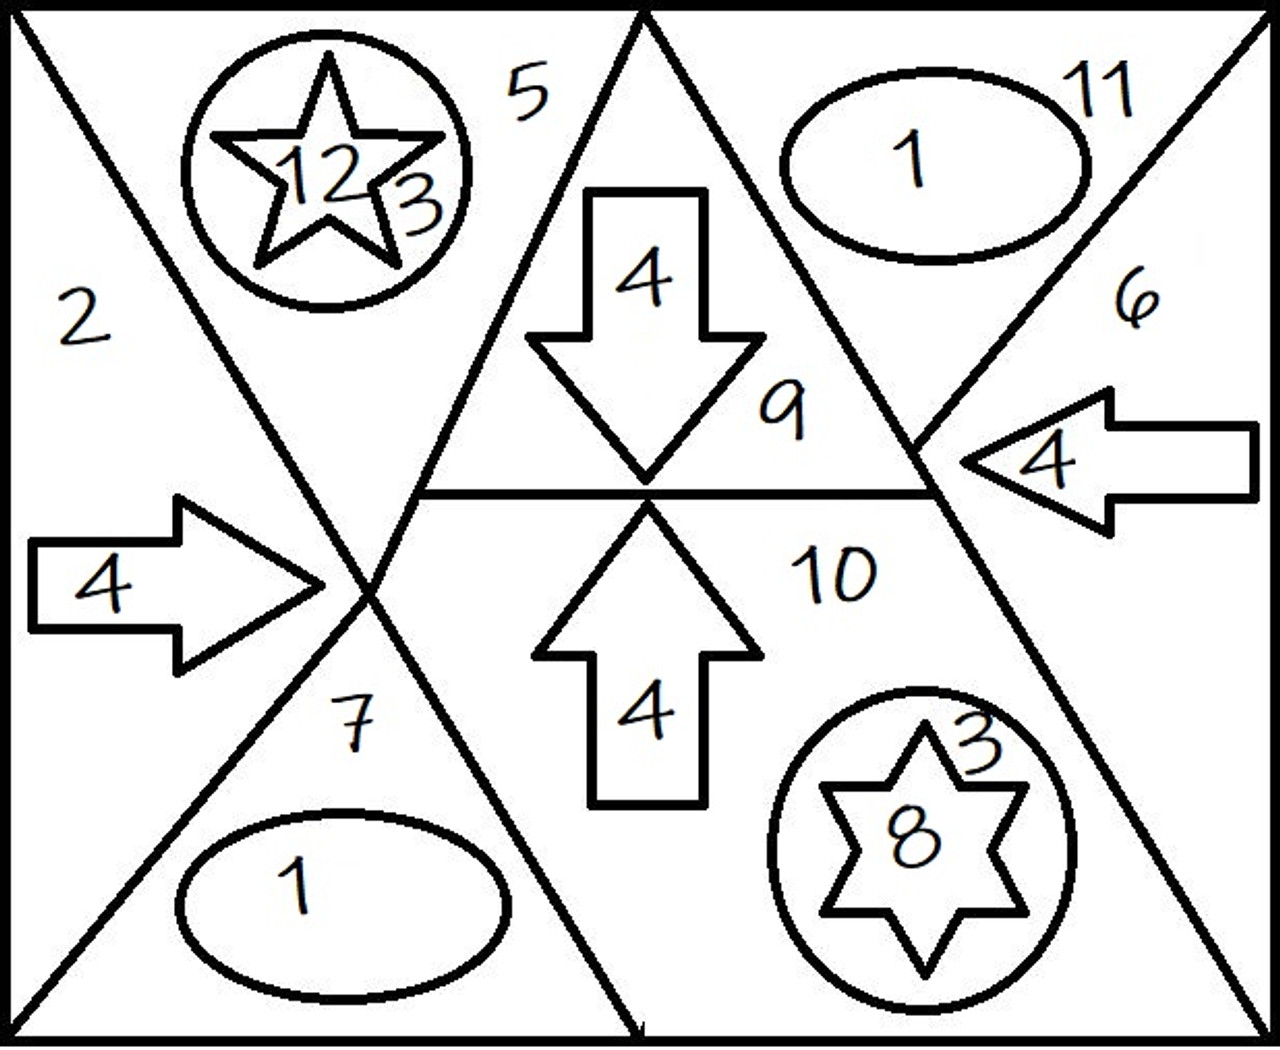 COLORING ACTIVITY: SOLVING MULTI-STEP EQUATIONS